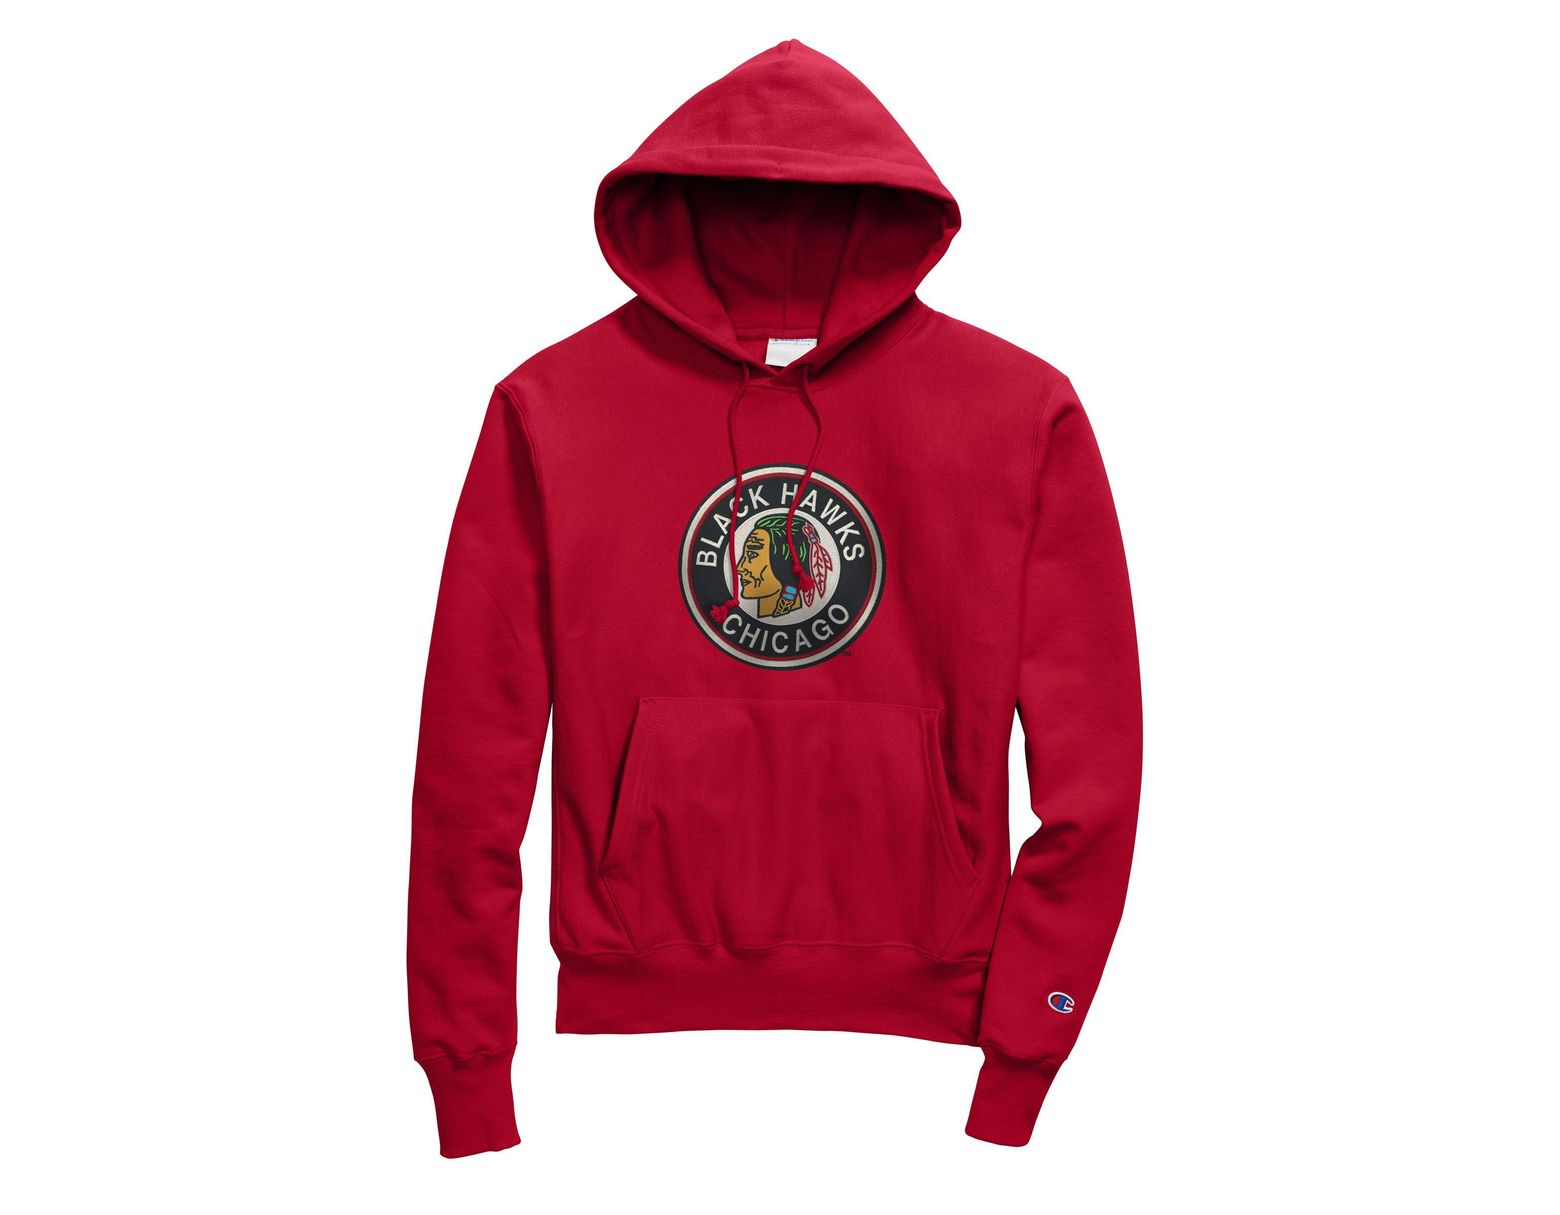 info for 1e1c3 77a4b Champion Exclusive Life® Reverse Weave® Nhl Hoodie, Vintage ...